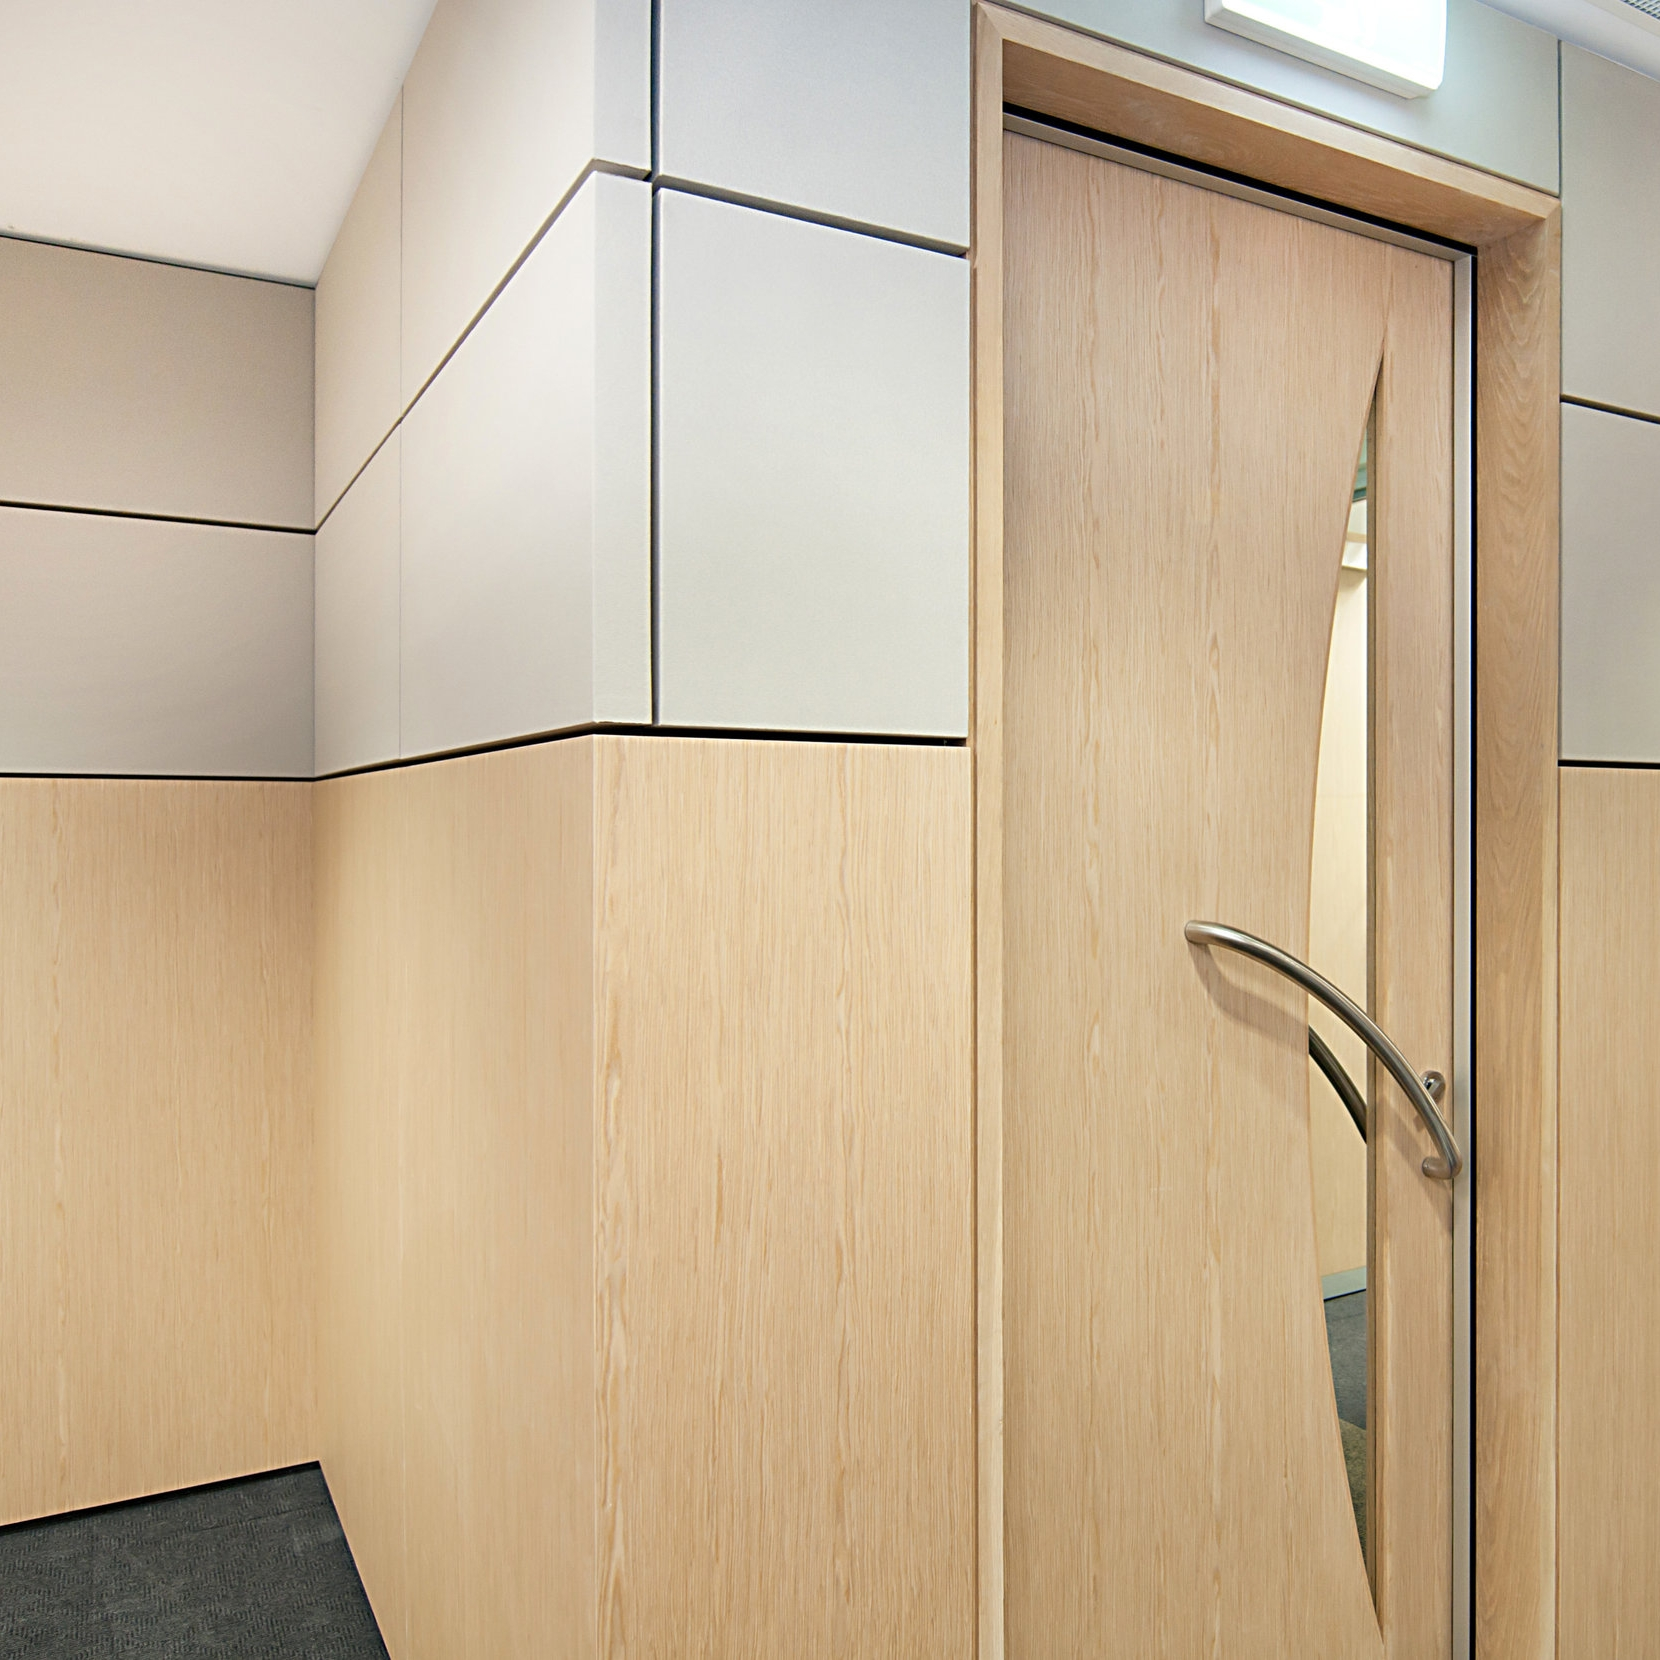 Acoustic Modules - The highest quality custom manufactured acoustic panels with a choice of fabrics or prints.